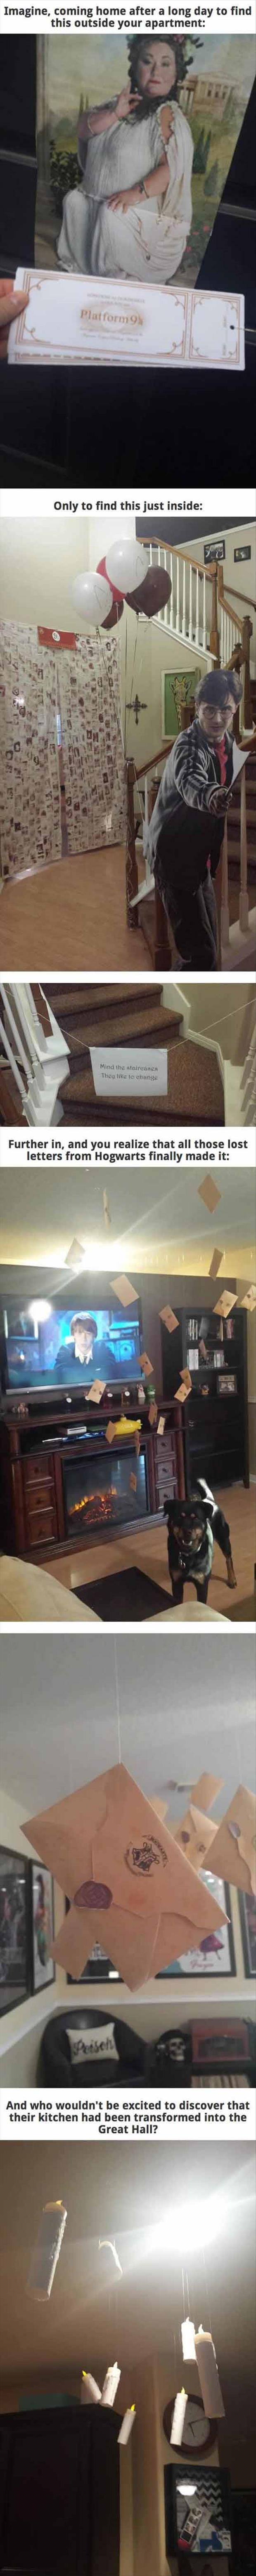 One Disturbing Harry Potter Party!